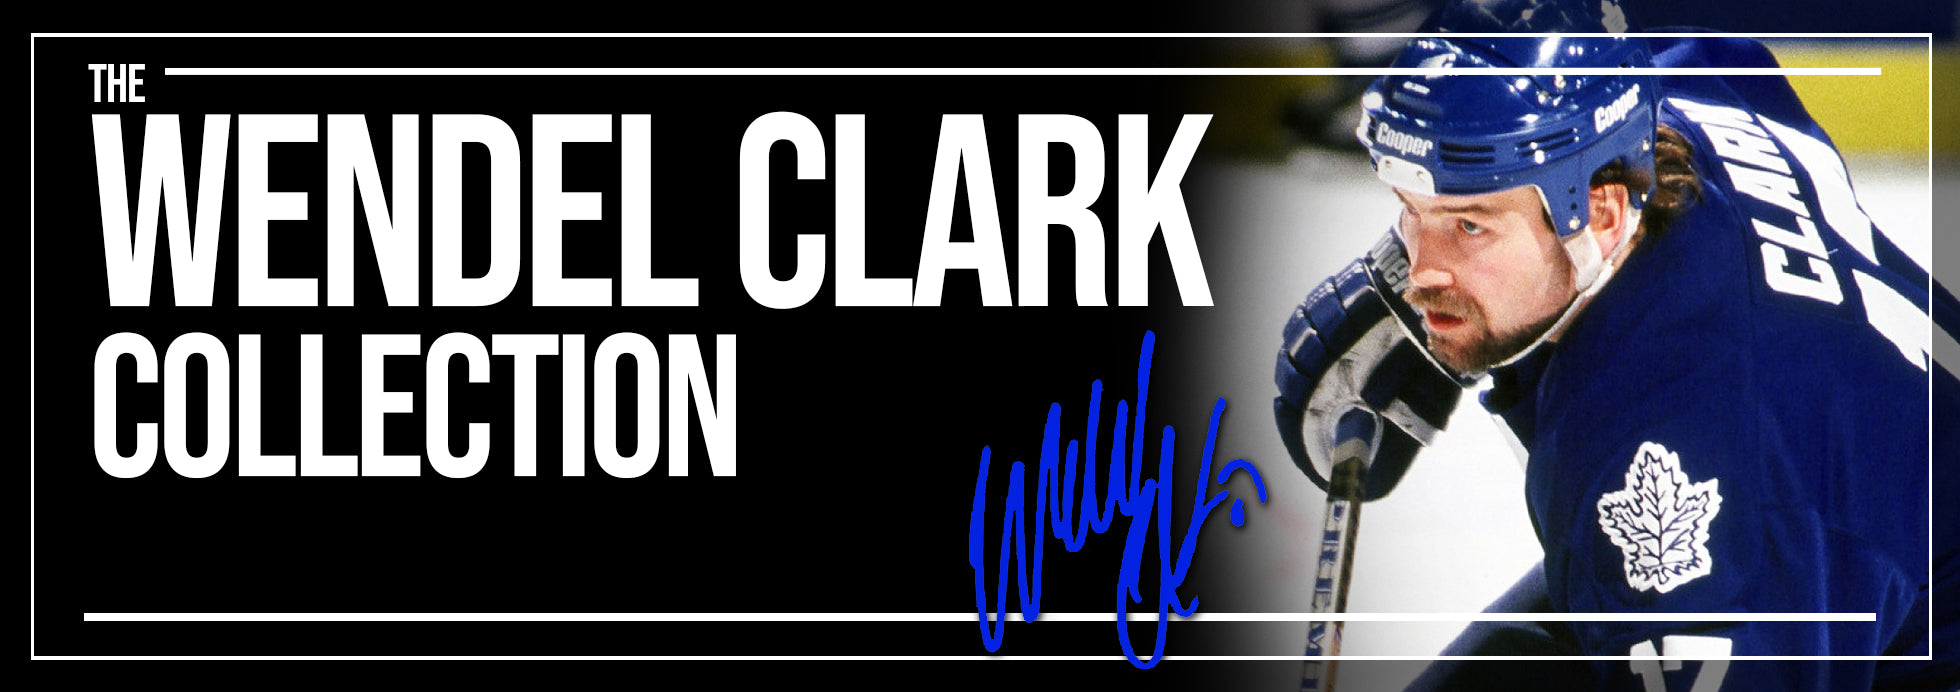 Wendel Clark Collection Banner